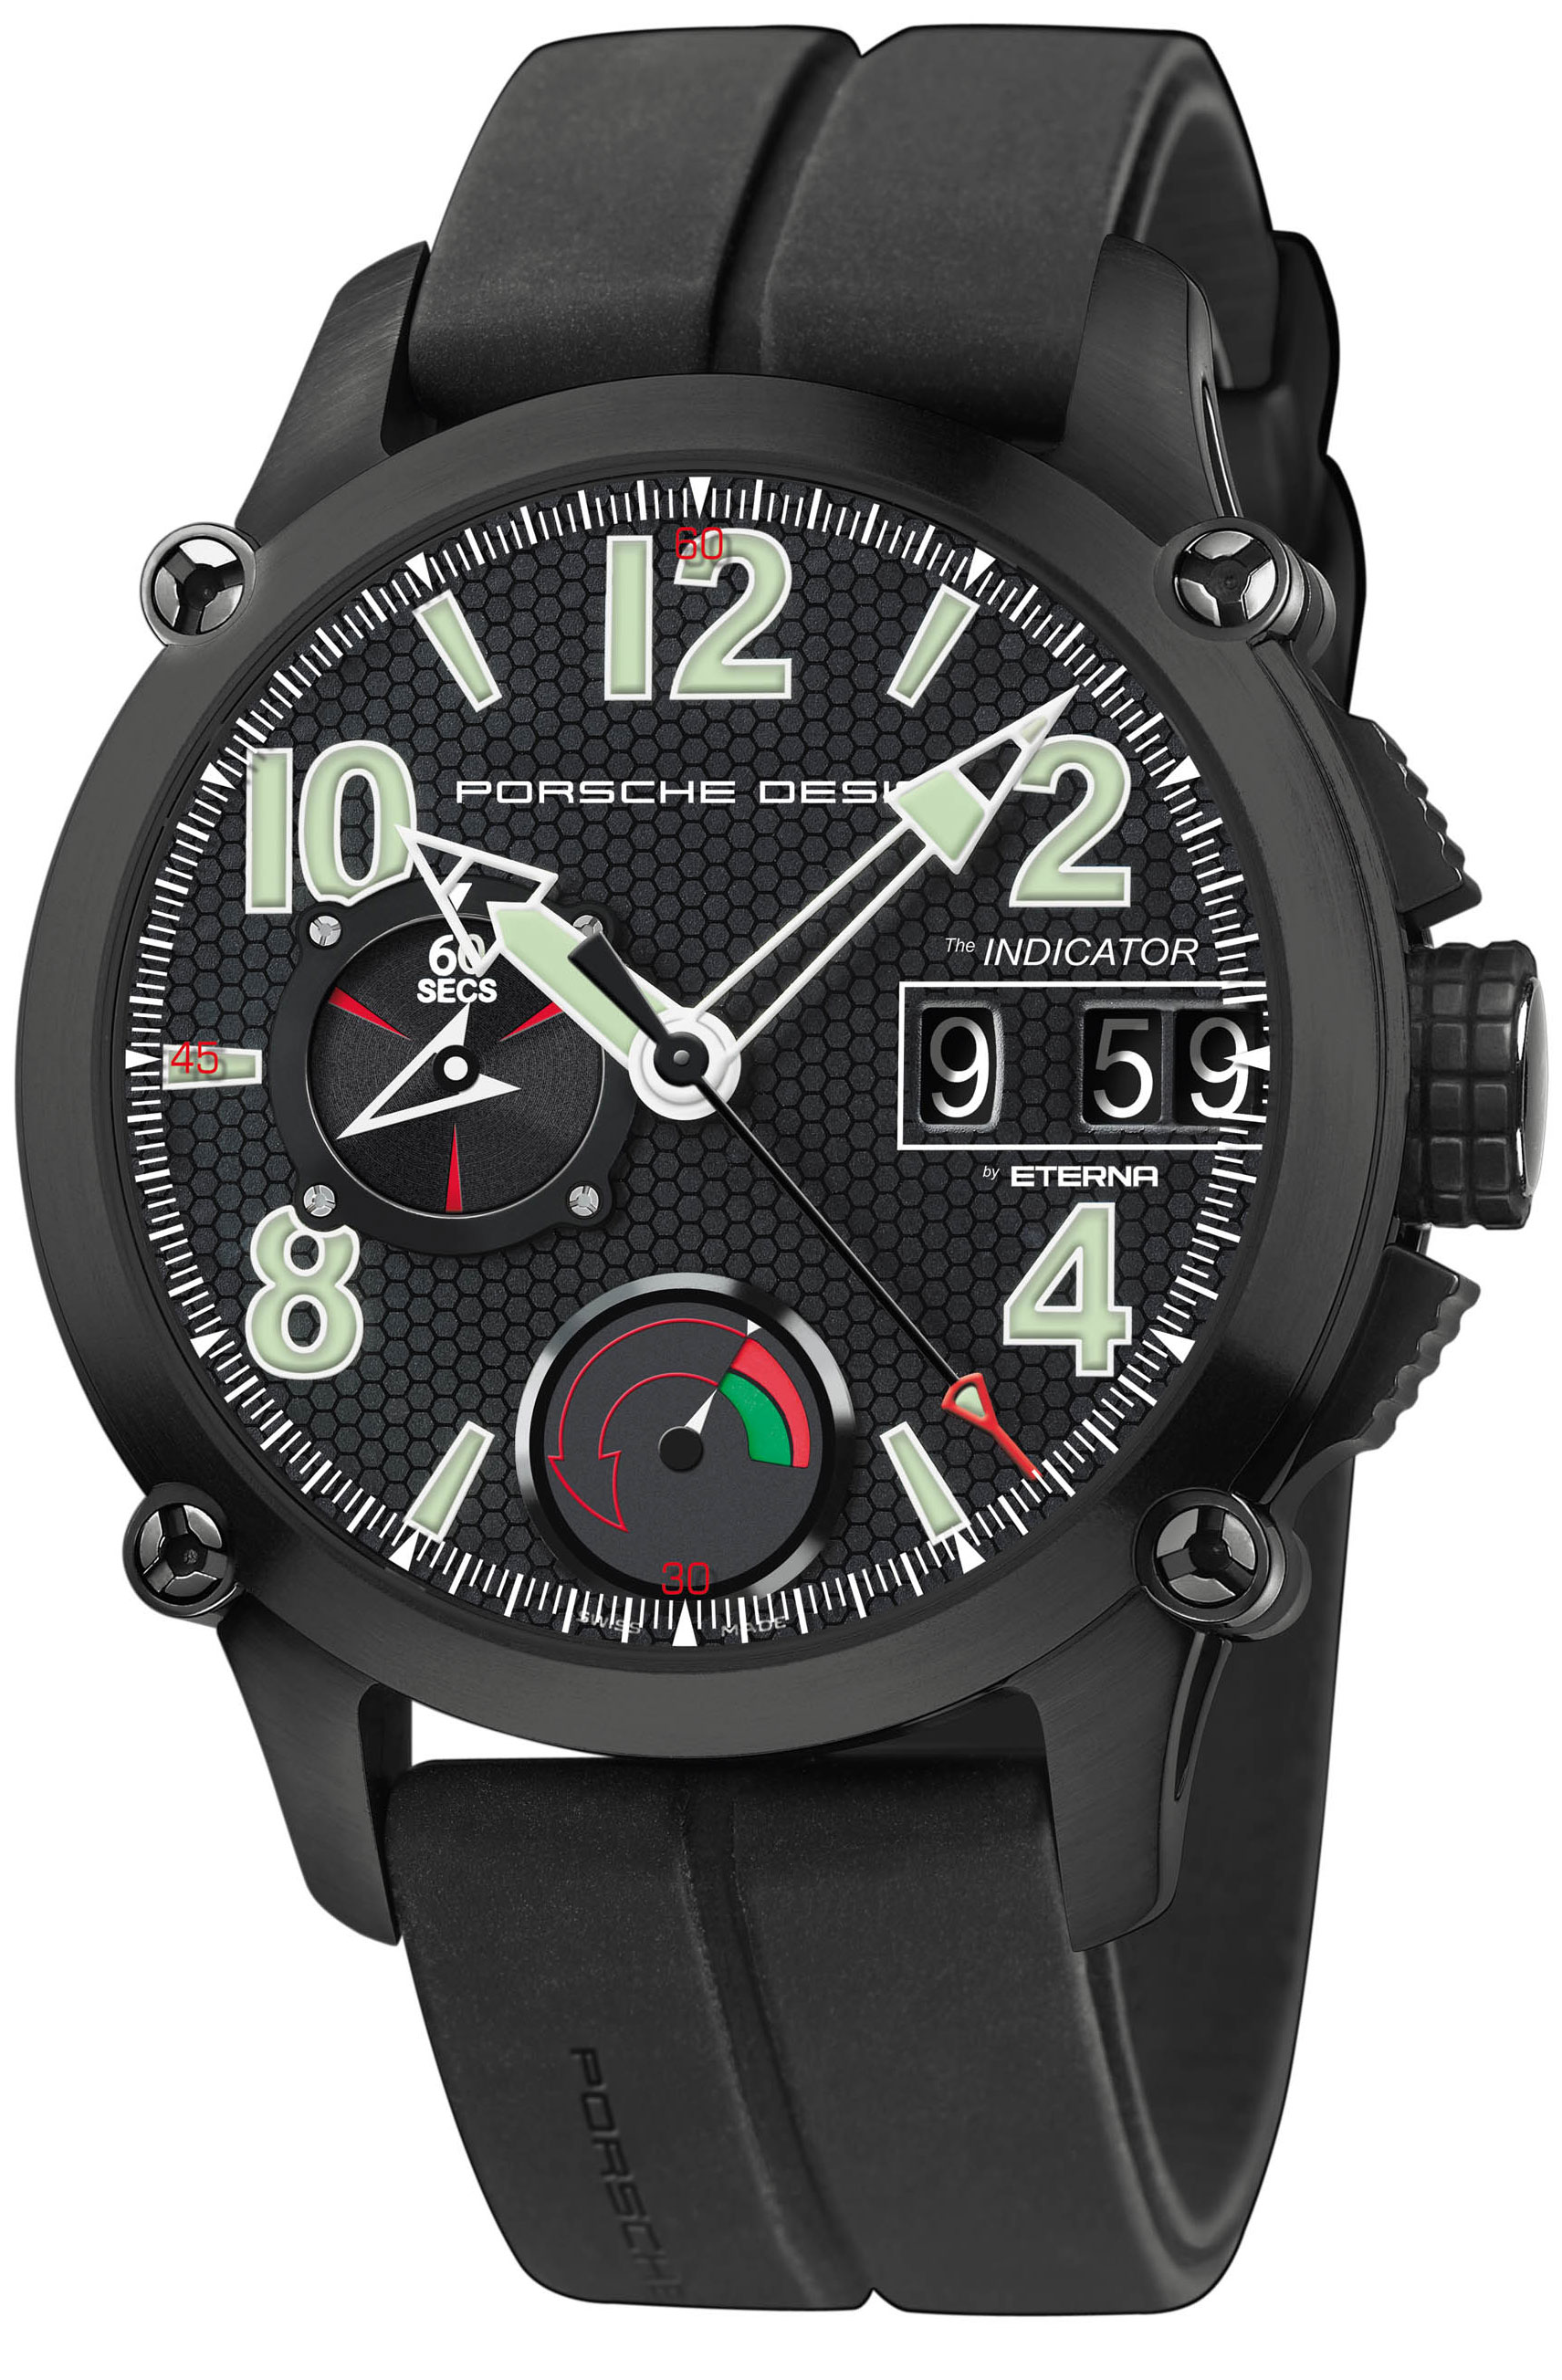 buy Porsche Design Indicator 6910.12.41.1149 watches